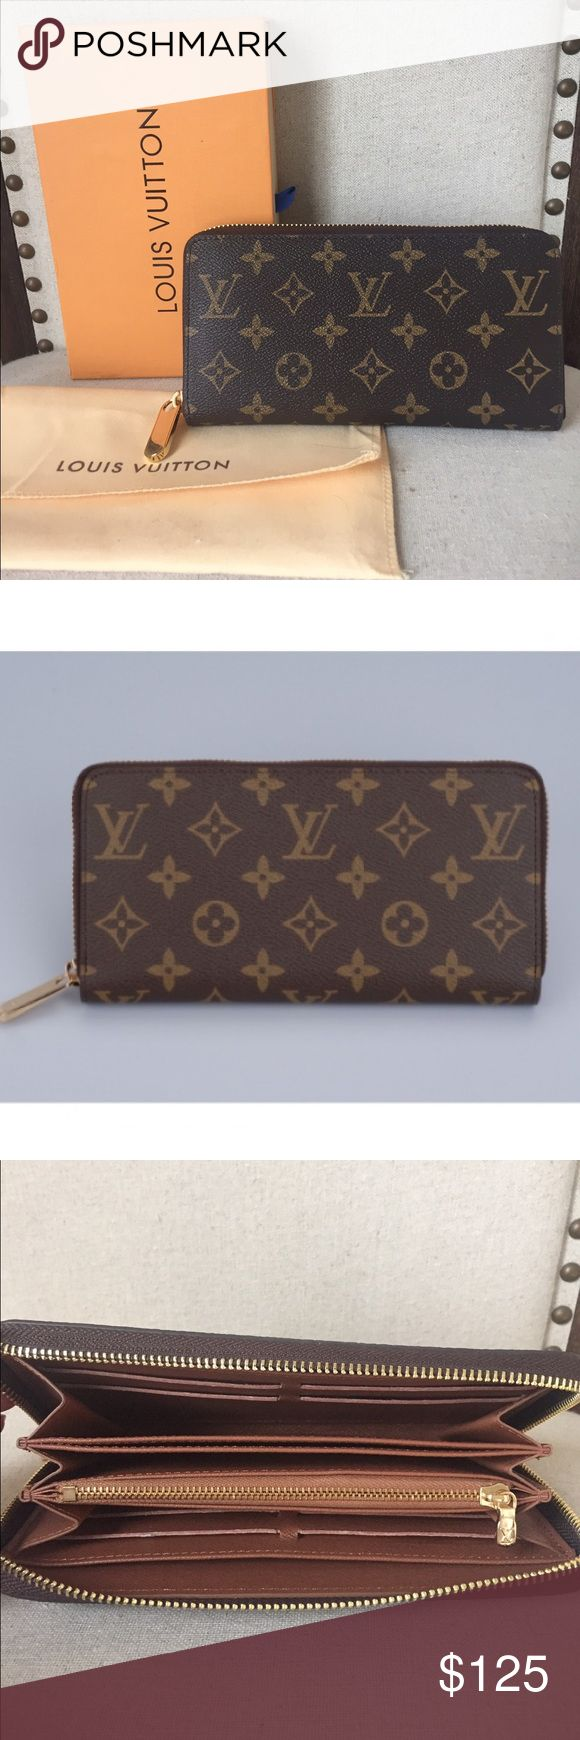 Louis Vuitton Zippy Wallet Beautifully appointed wallet in excellent like new condition. Only used twice. Classic LV Monogram Canvas exterior with zipper closure Interior: Leather lining with heat embossed Louis Vuitton Paris, Made in France stamp and product code Pockets: A flat zipper pocket, an open flat pocket and three open flap compartments plus card slots in the interior. Date code ZH17014.  Comes with box and dust bag. Price reflects auth. Thanks for looking and OPEN to offers! Louis…